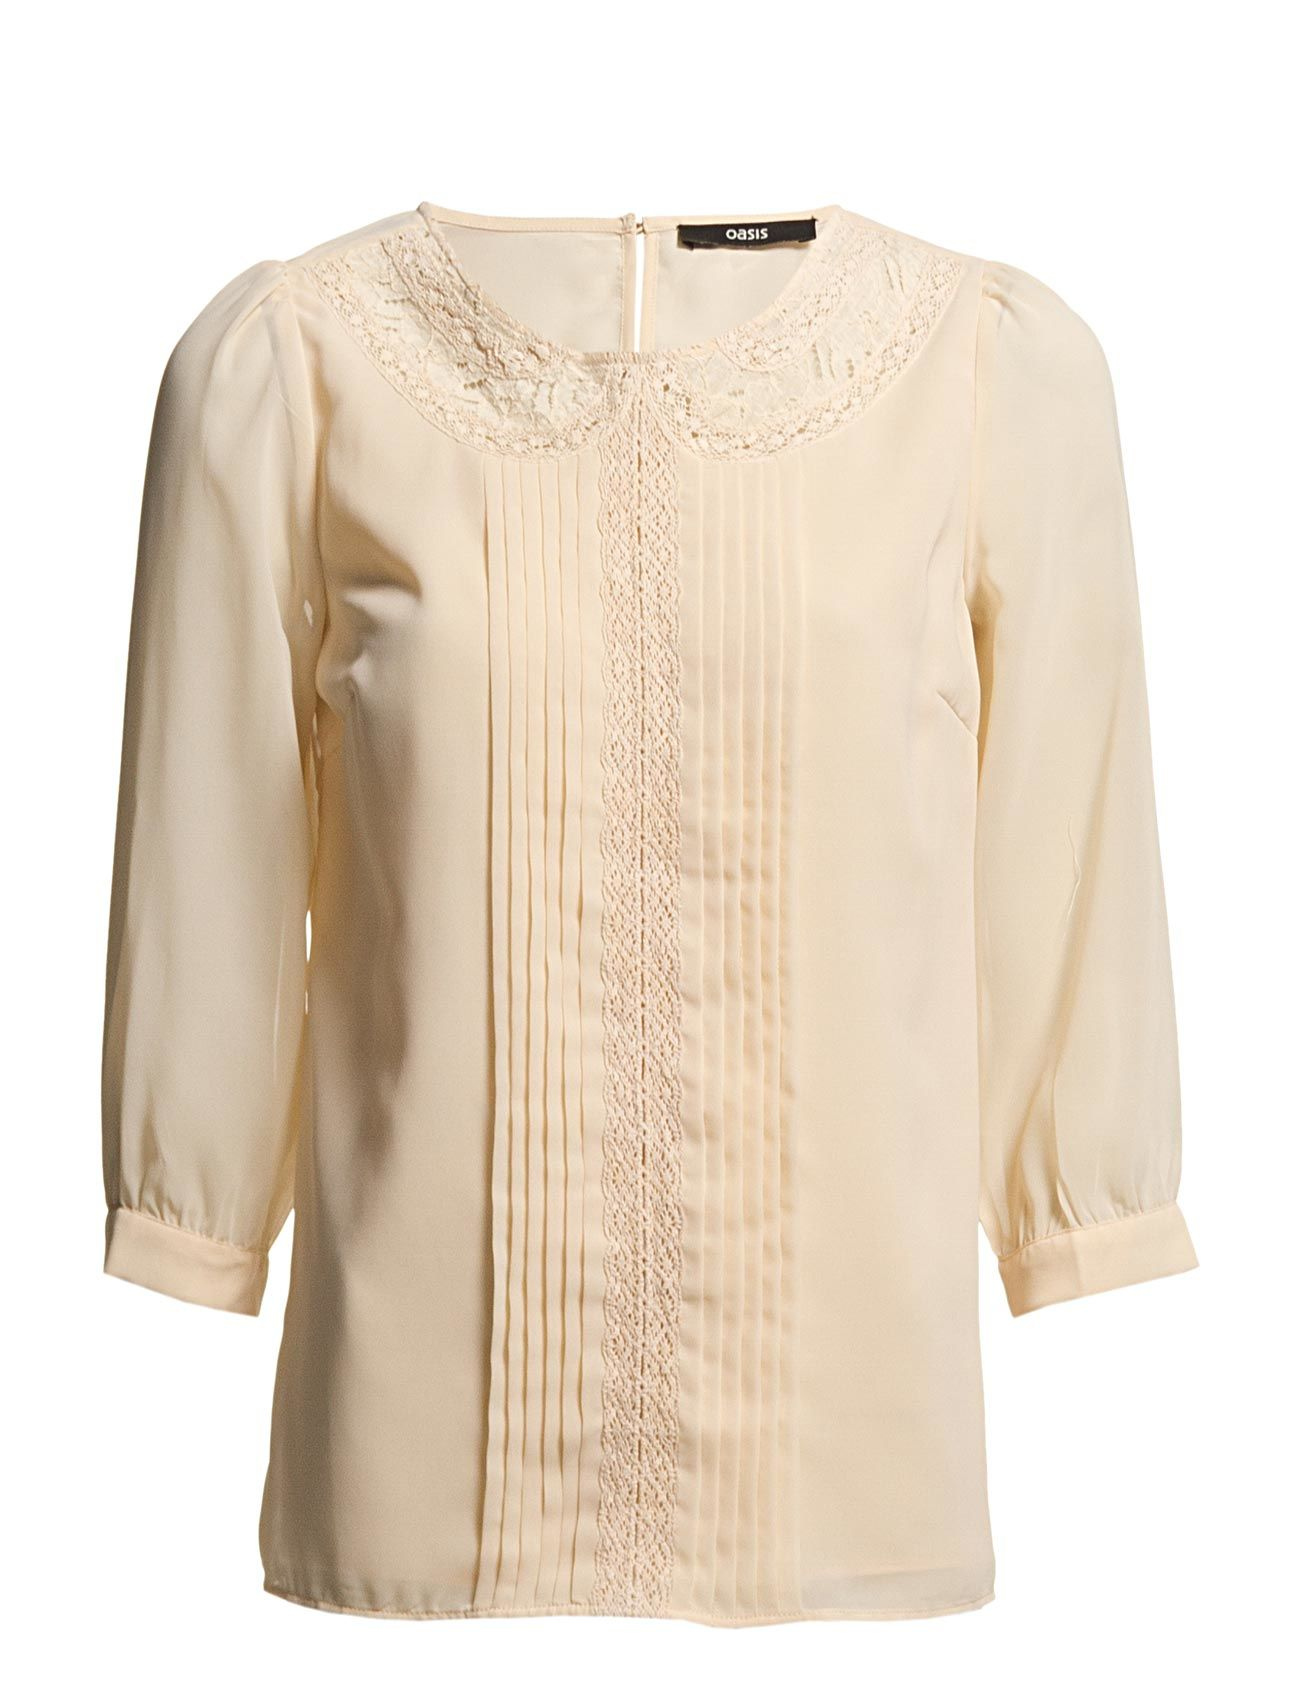 Oasis Lace Insert Ls Top